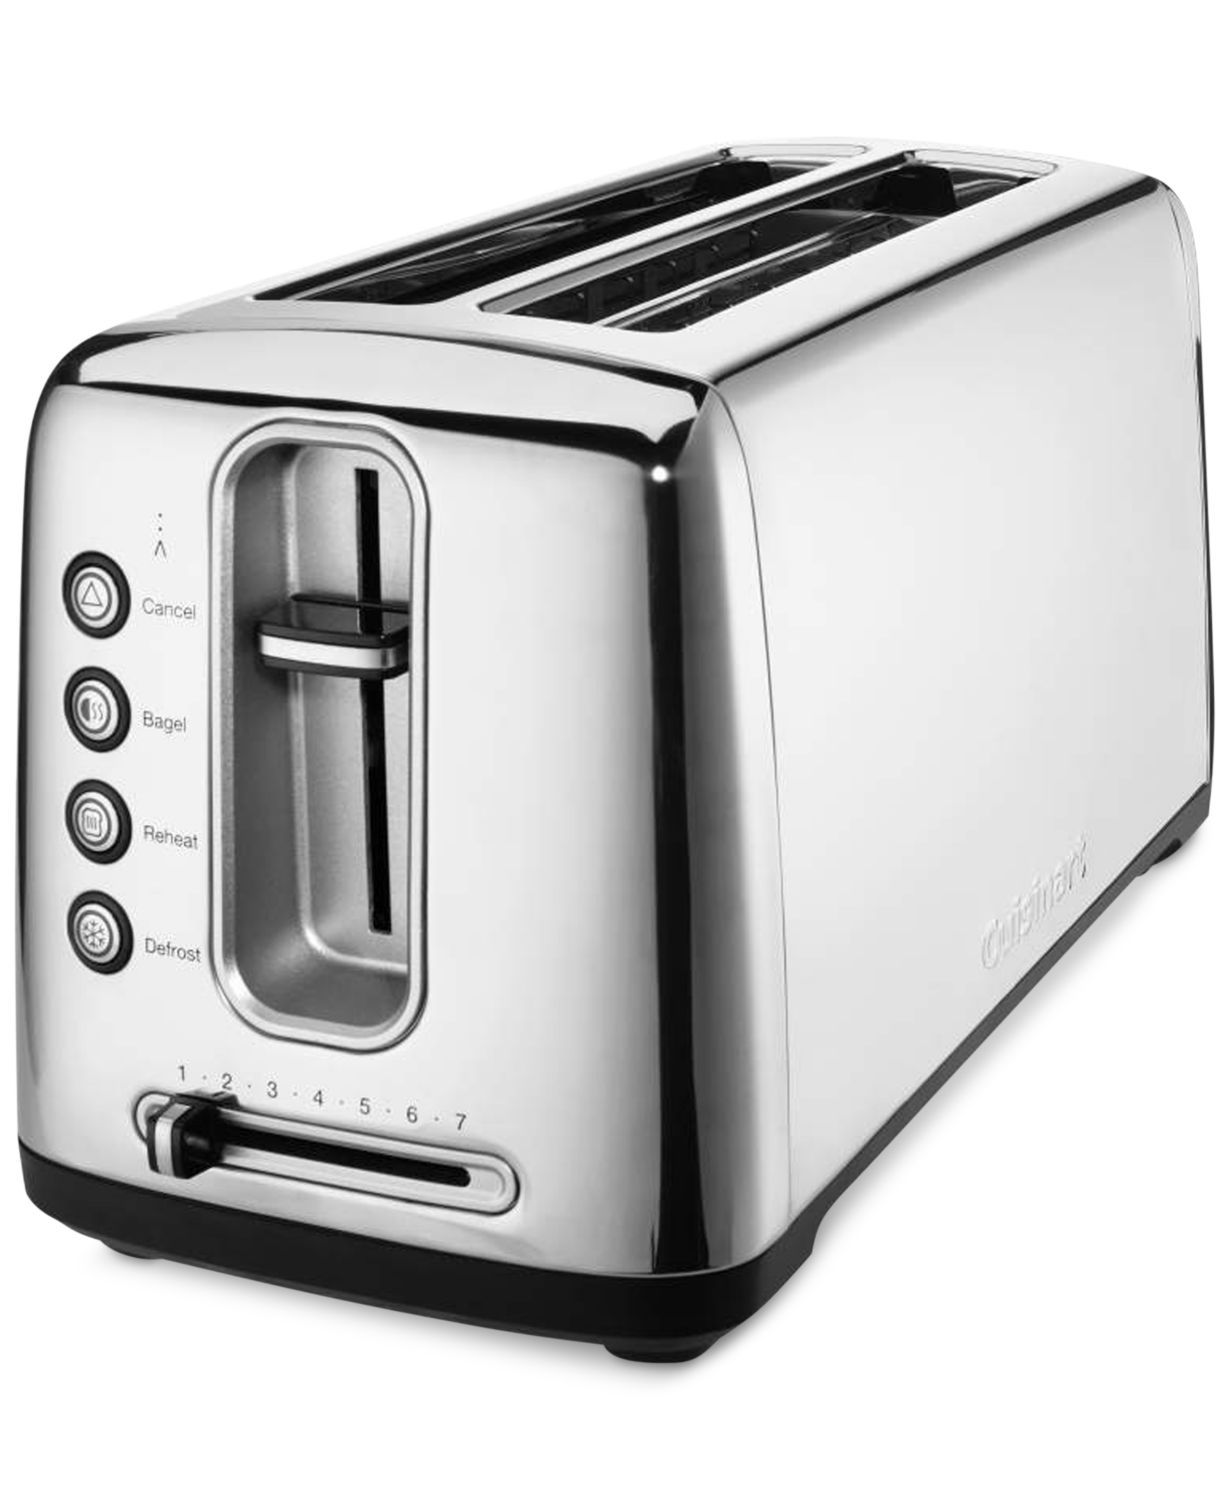 8 Best Toasters Of 2021 Reviews Of Top Rated Bread Toasters